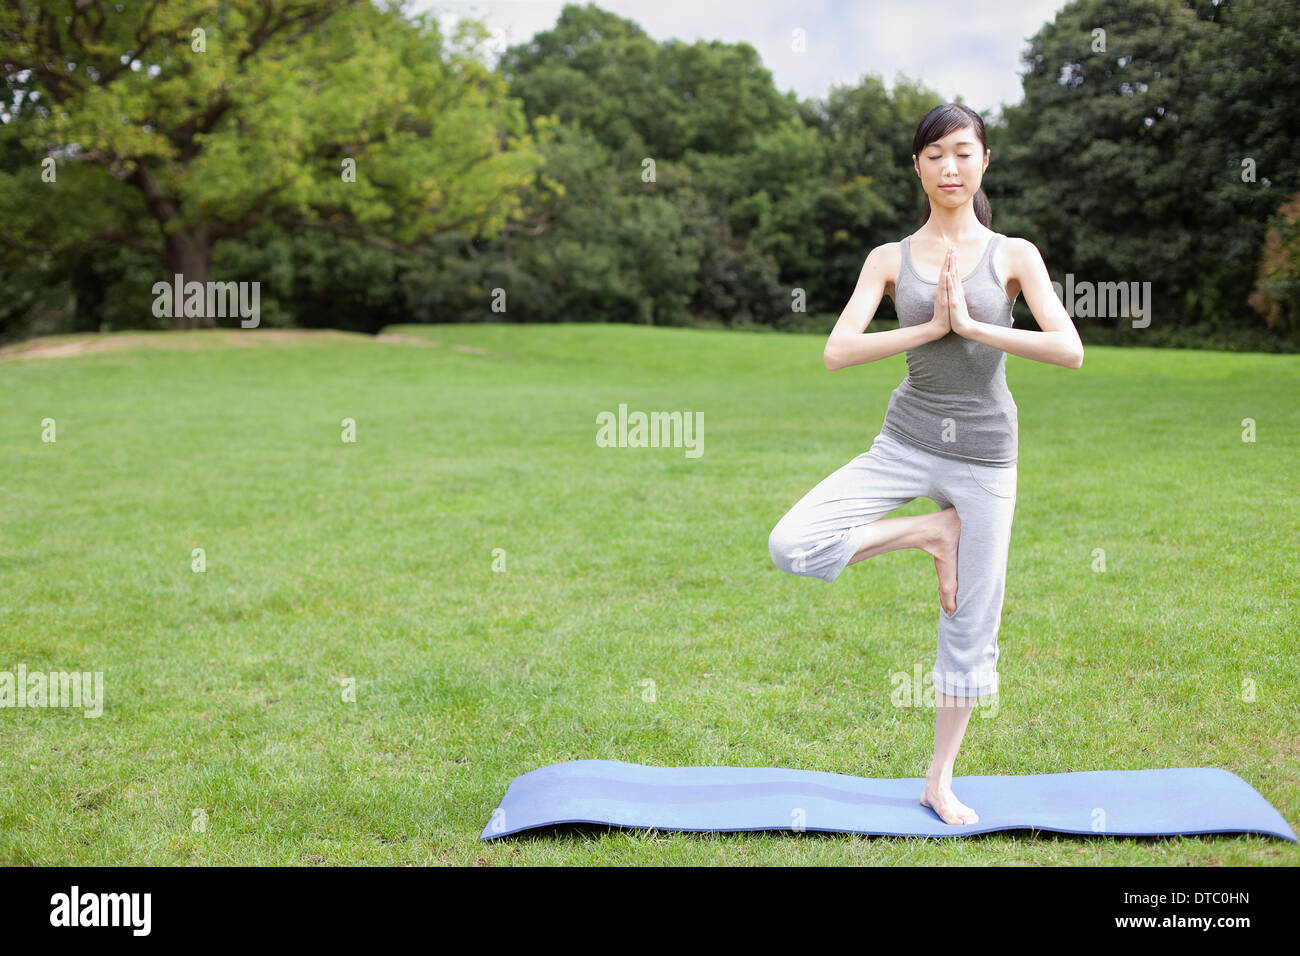 Young woman in park practicing yoga tree pose - Stock Image